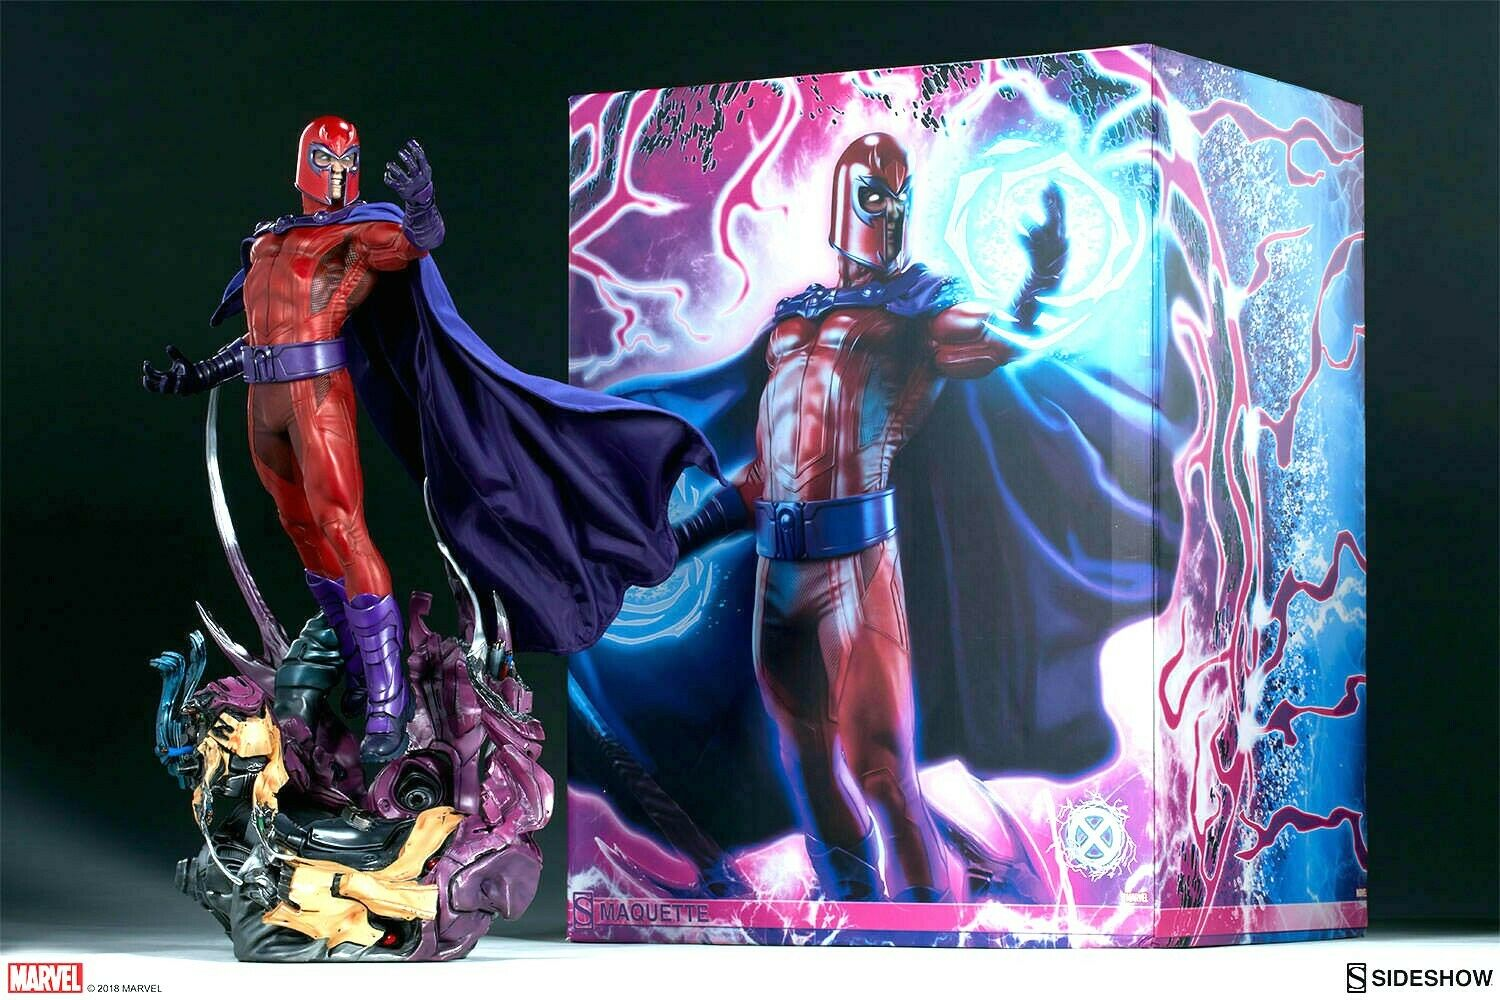 MARVEL Comics X-MEN Magneto Maquette by Sideshow Collectibles statue